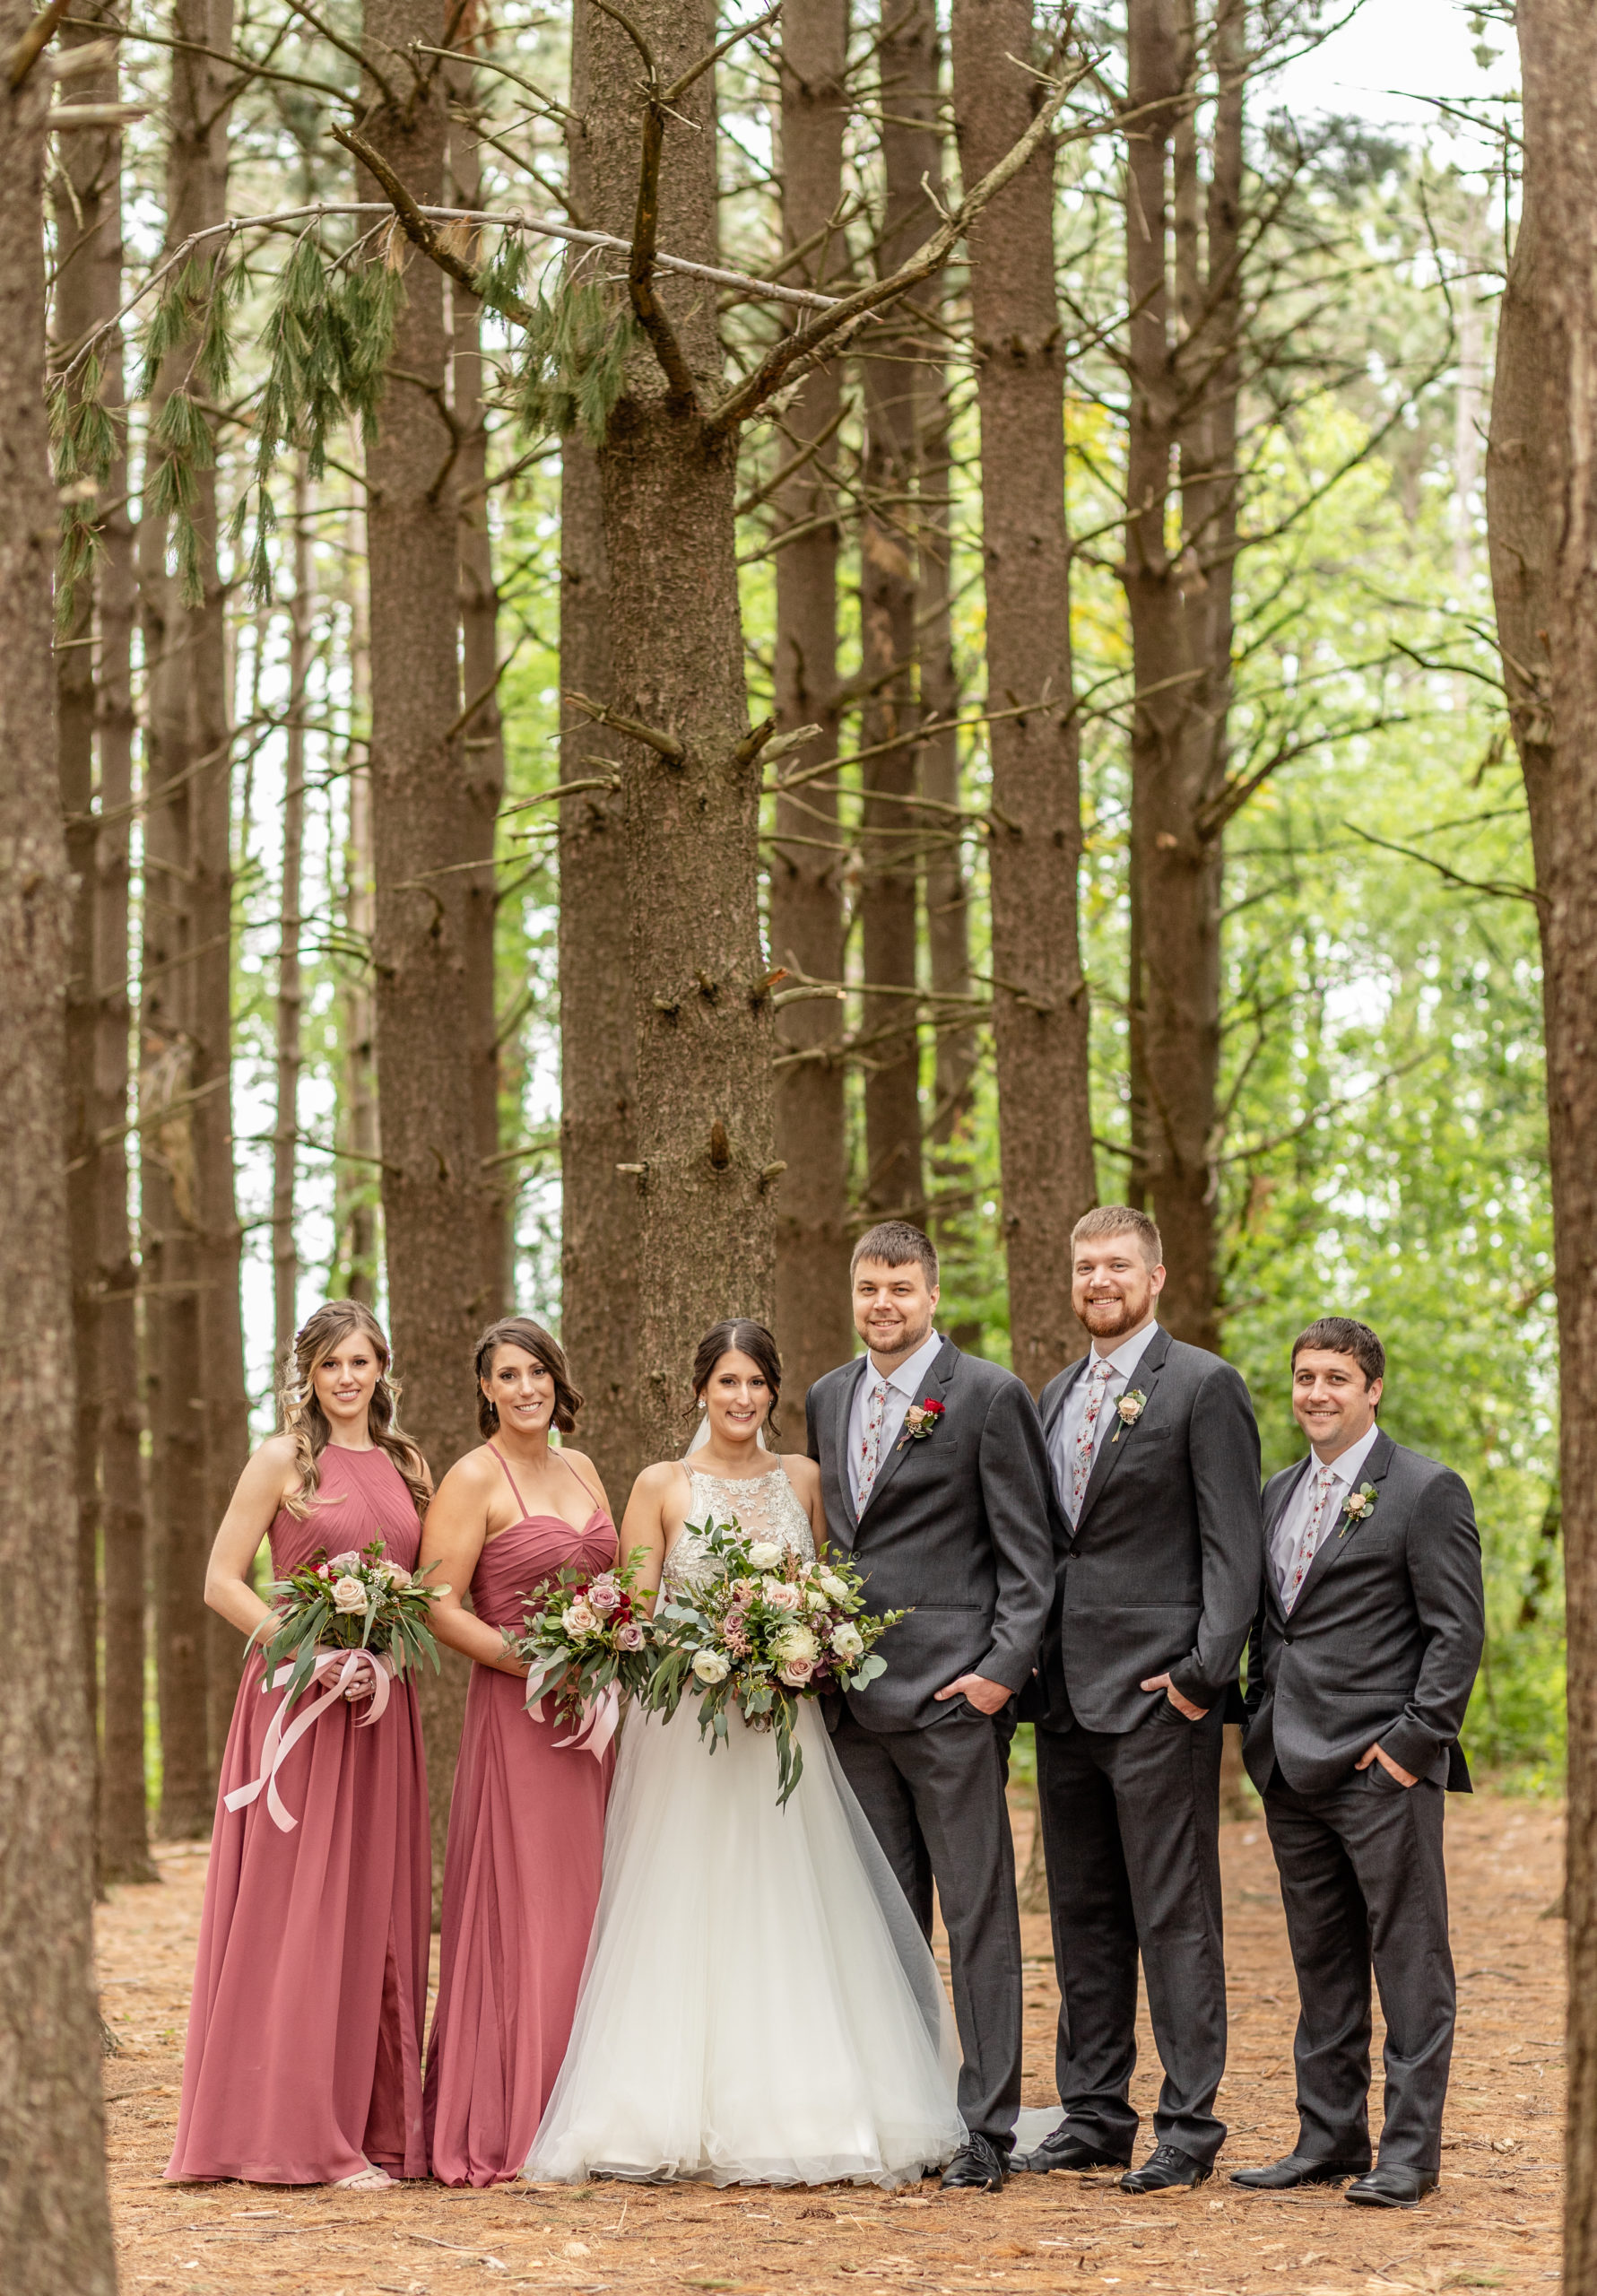 wedding party, pine trees, grey suit, wedding dress, bouquets, rusty pink